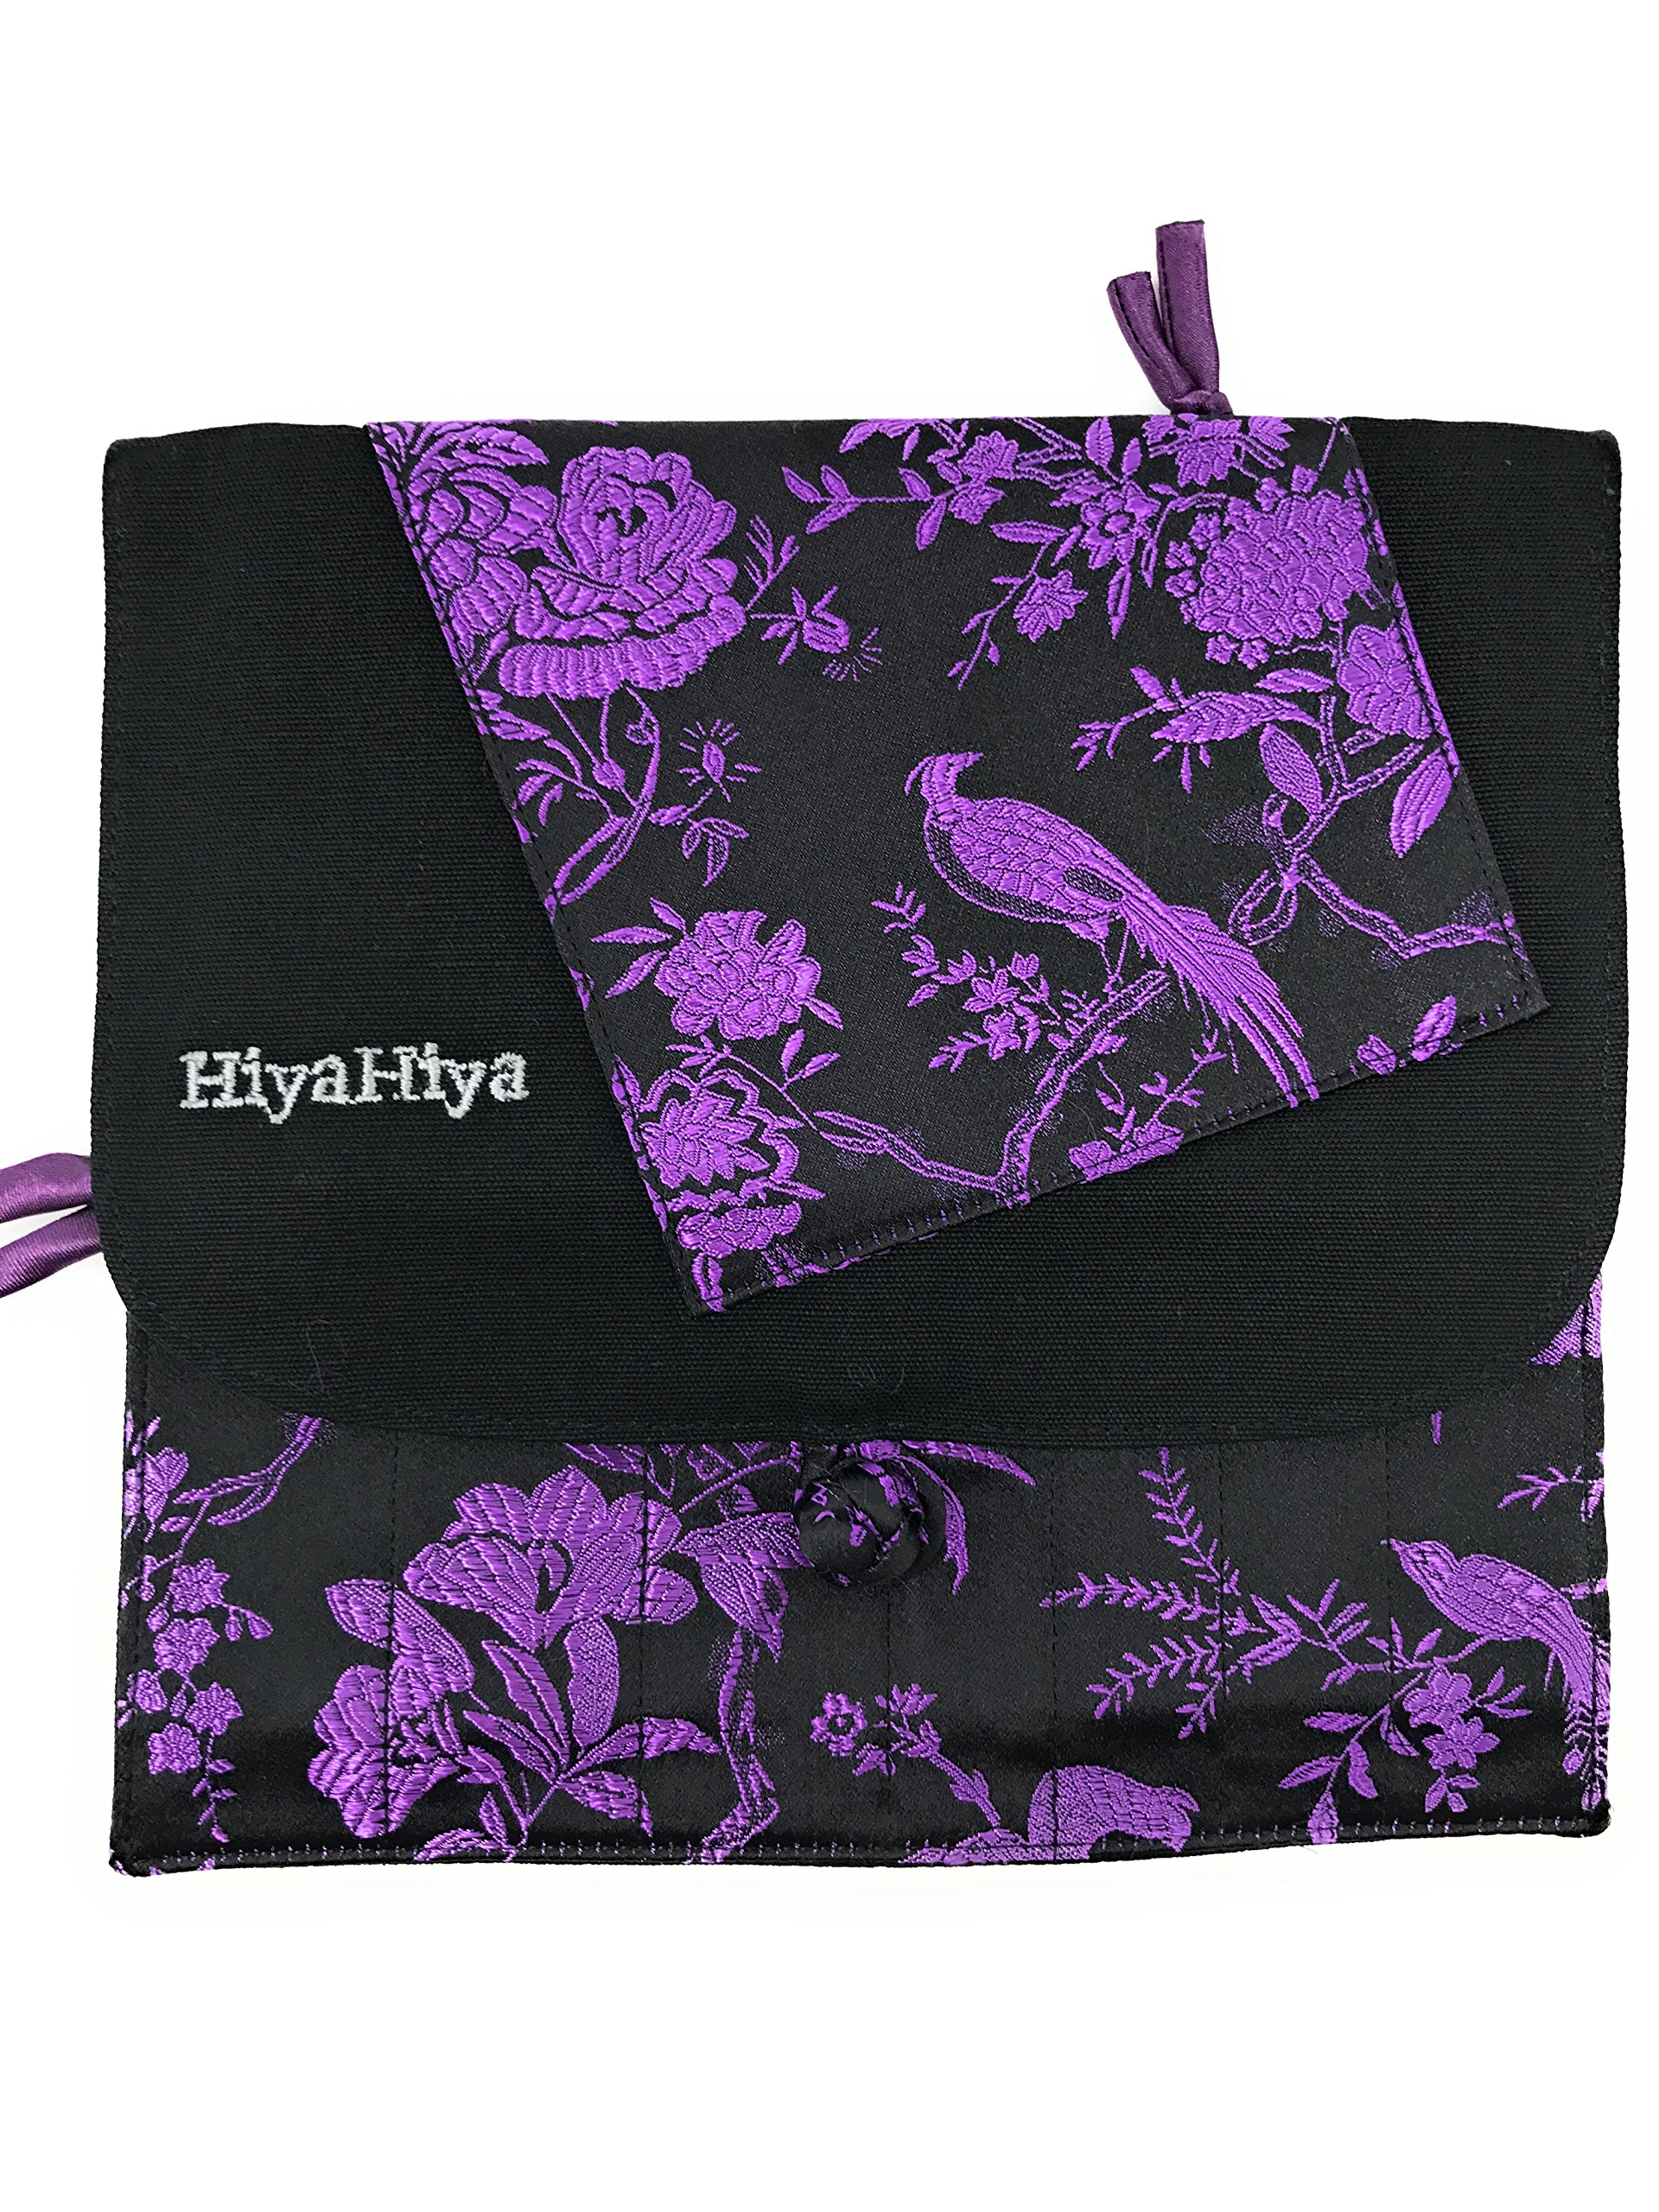 HiyaHiya Interchangeable Knitting or Crochet Needle Cases (purple & black)